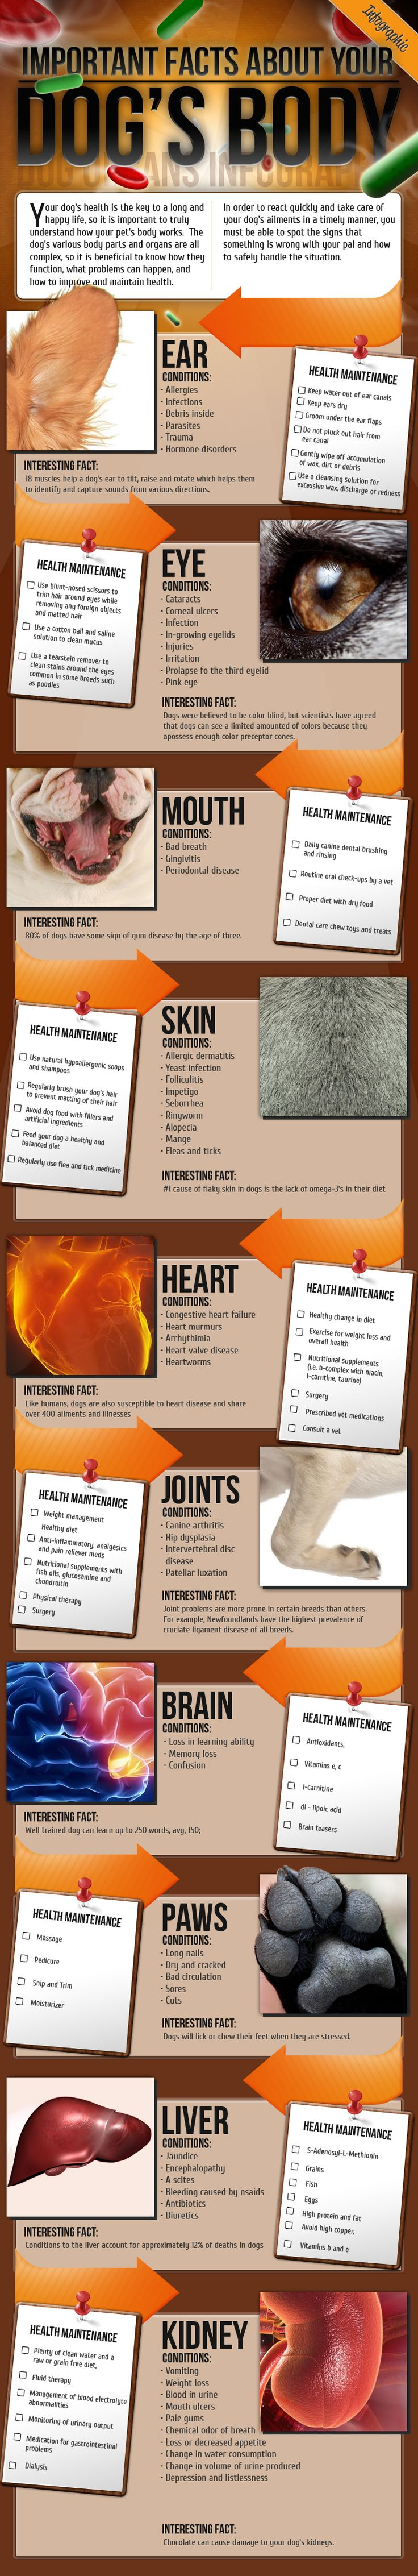 Important facts about your dog's body. Via EntirelyPets.